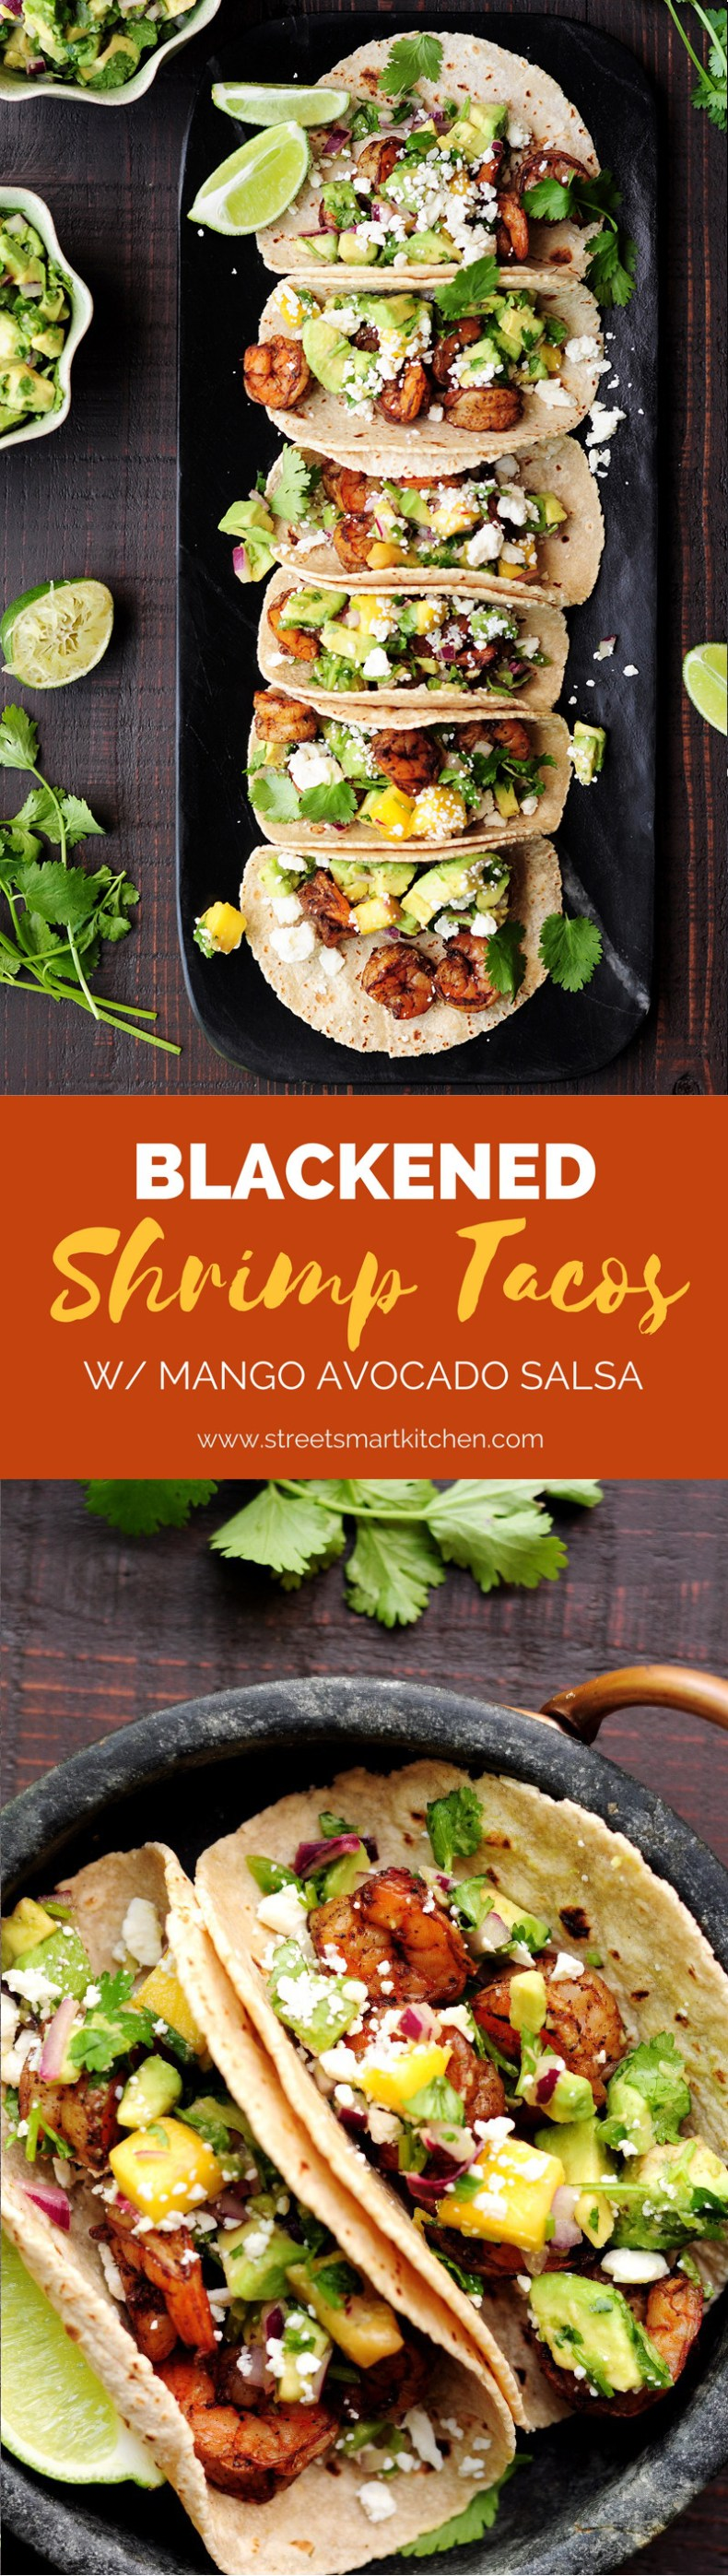 Shrimp tacos made with a homemade blackened seasoning mix, topped with refreshing mango avocado salsa and feta cheese. Yum!